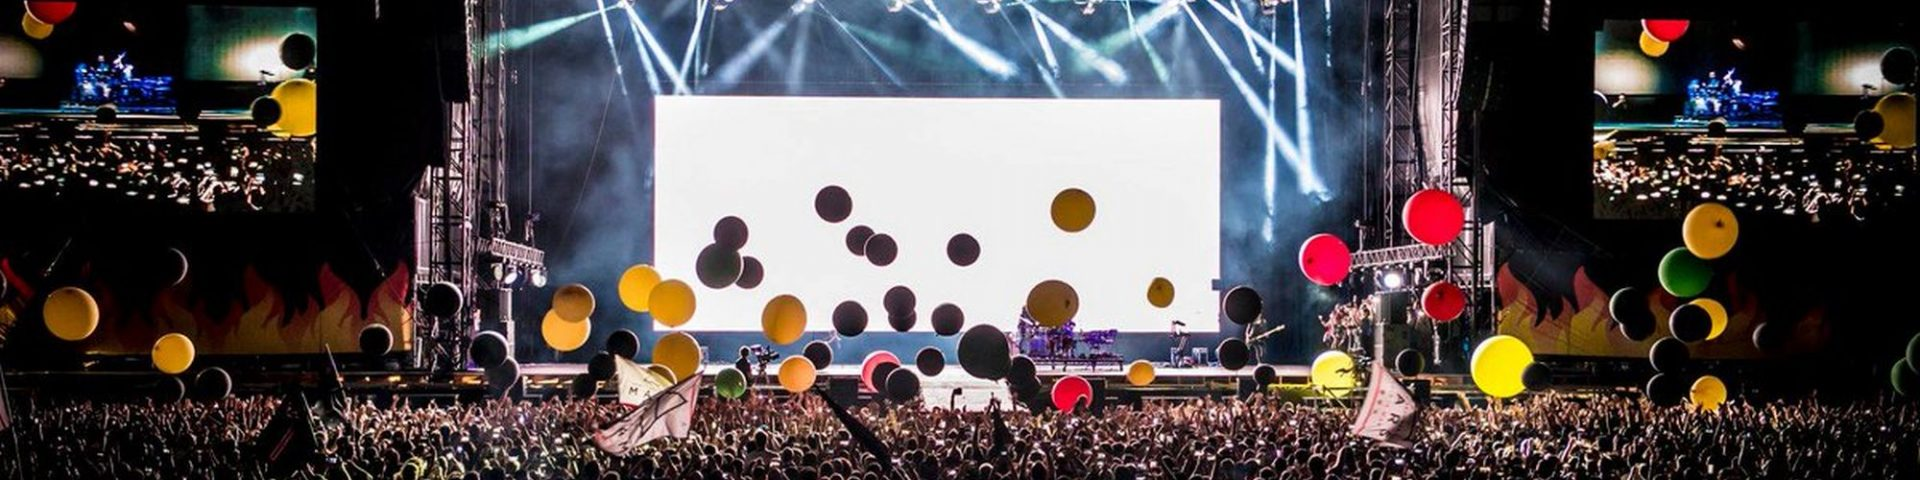 Milano Rocks con Twenty One Pilots, Billie Eilish, Fidlar: biglietti, scaletta